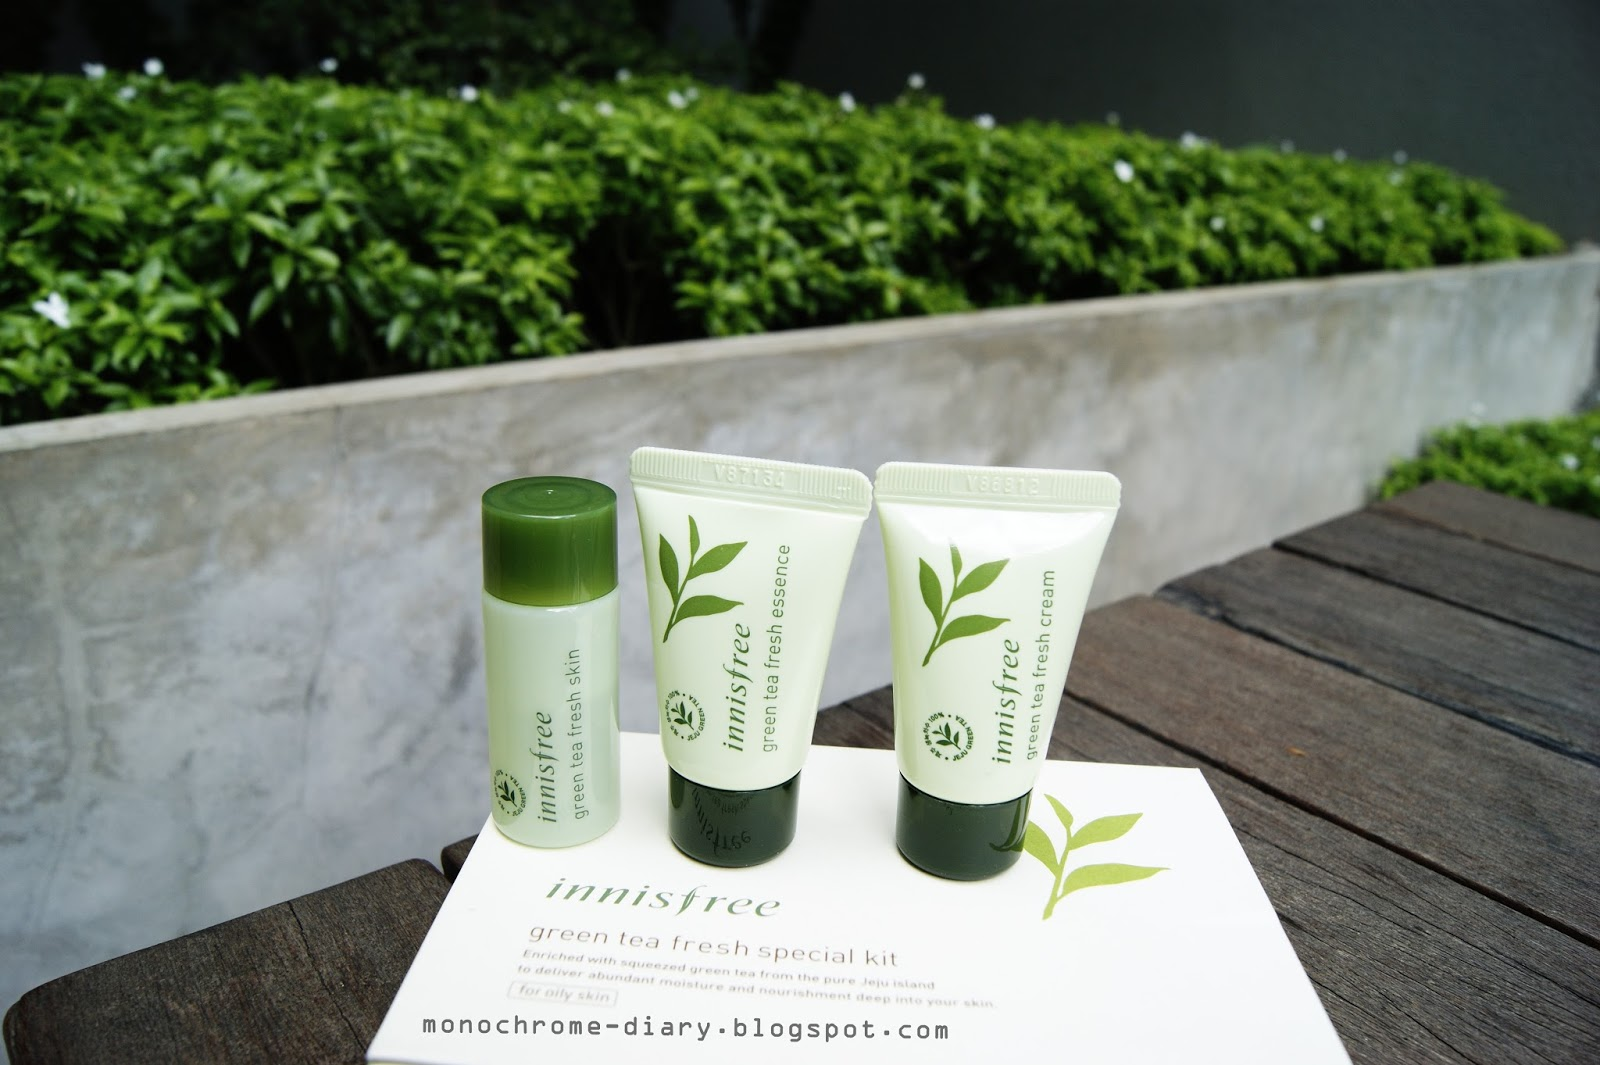 Innisfree Greentea Fresh Special Kit Review Kiko Kim Green Tea Balancing 4 Items This There Are Toner Essence And Cream They Produced By Yes Suits For Oily Skin Type